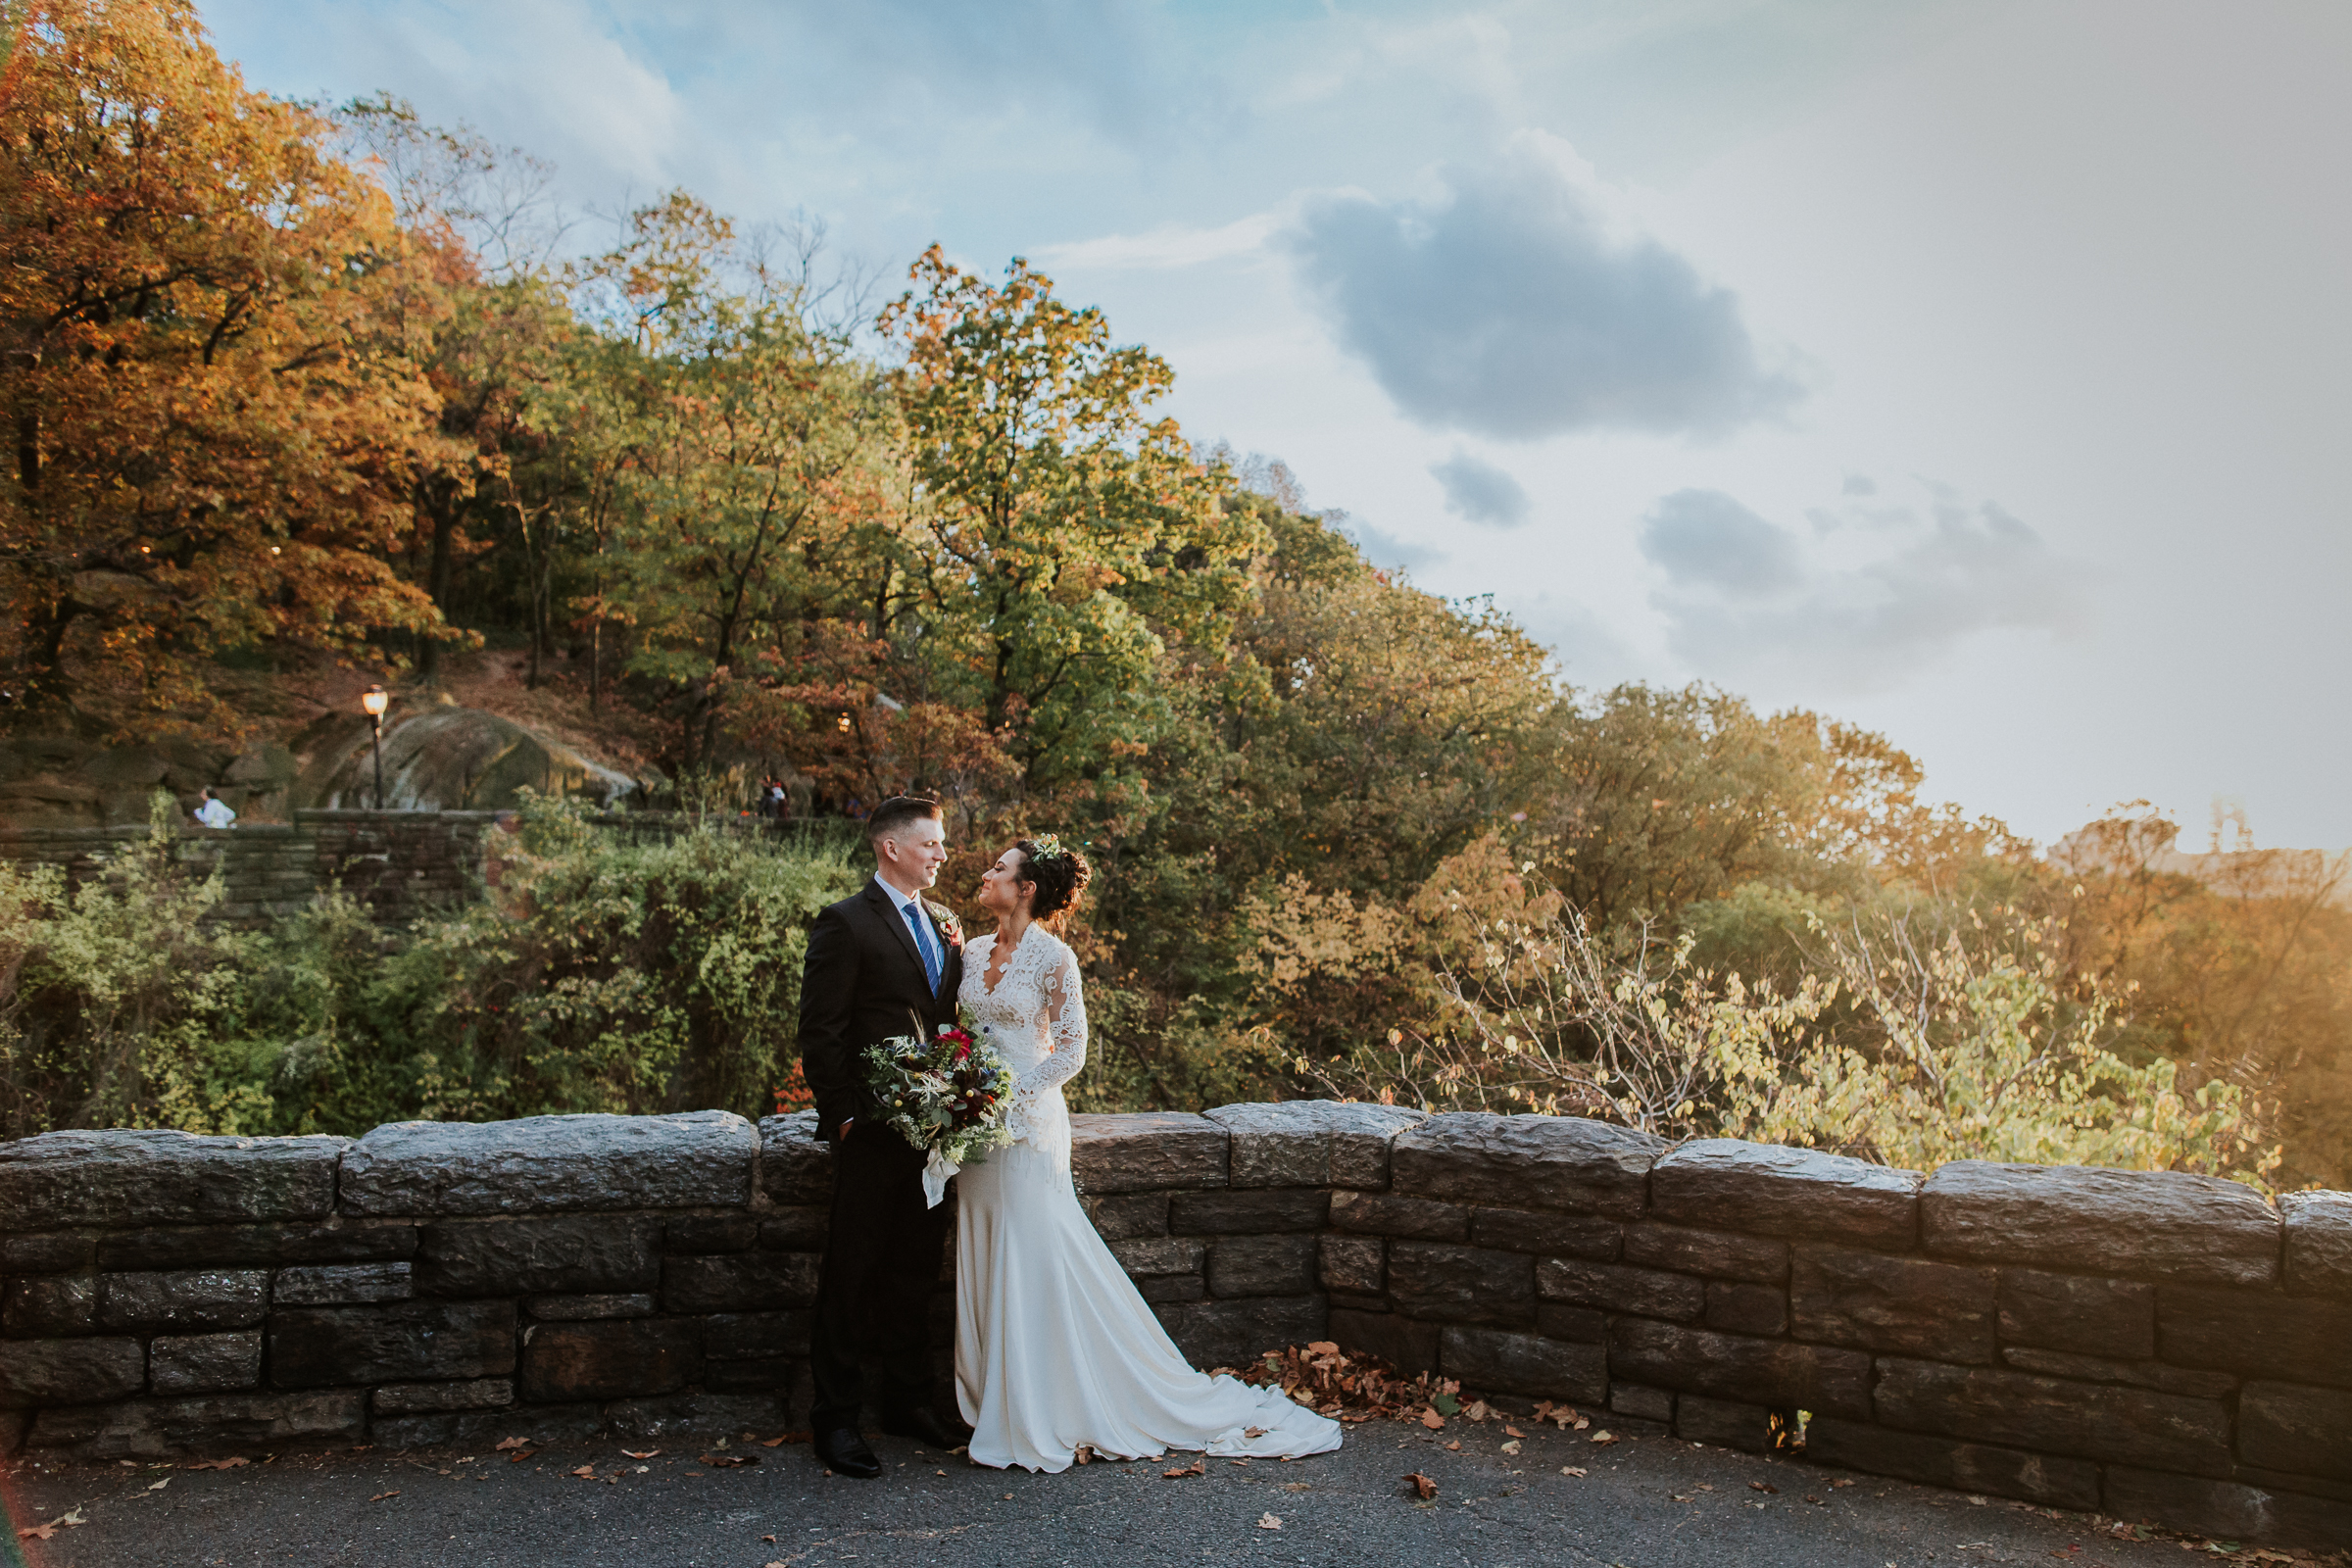 New-Leaf-Cafe-Fort-Tryon-Park-New-York-Documentary-Wedding-Photographer-73.jpg